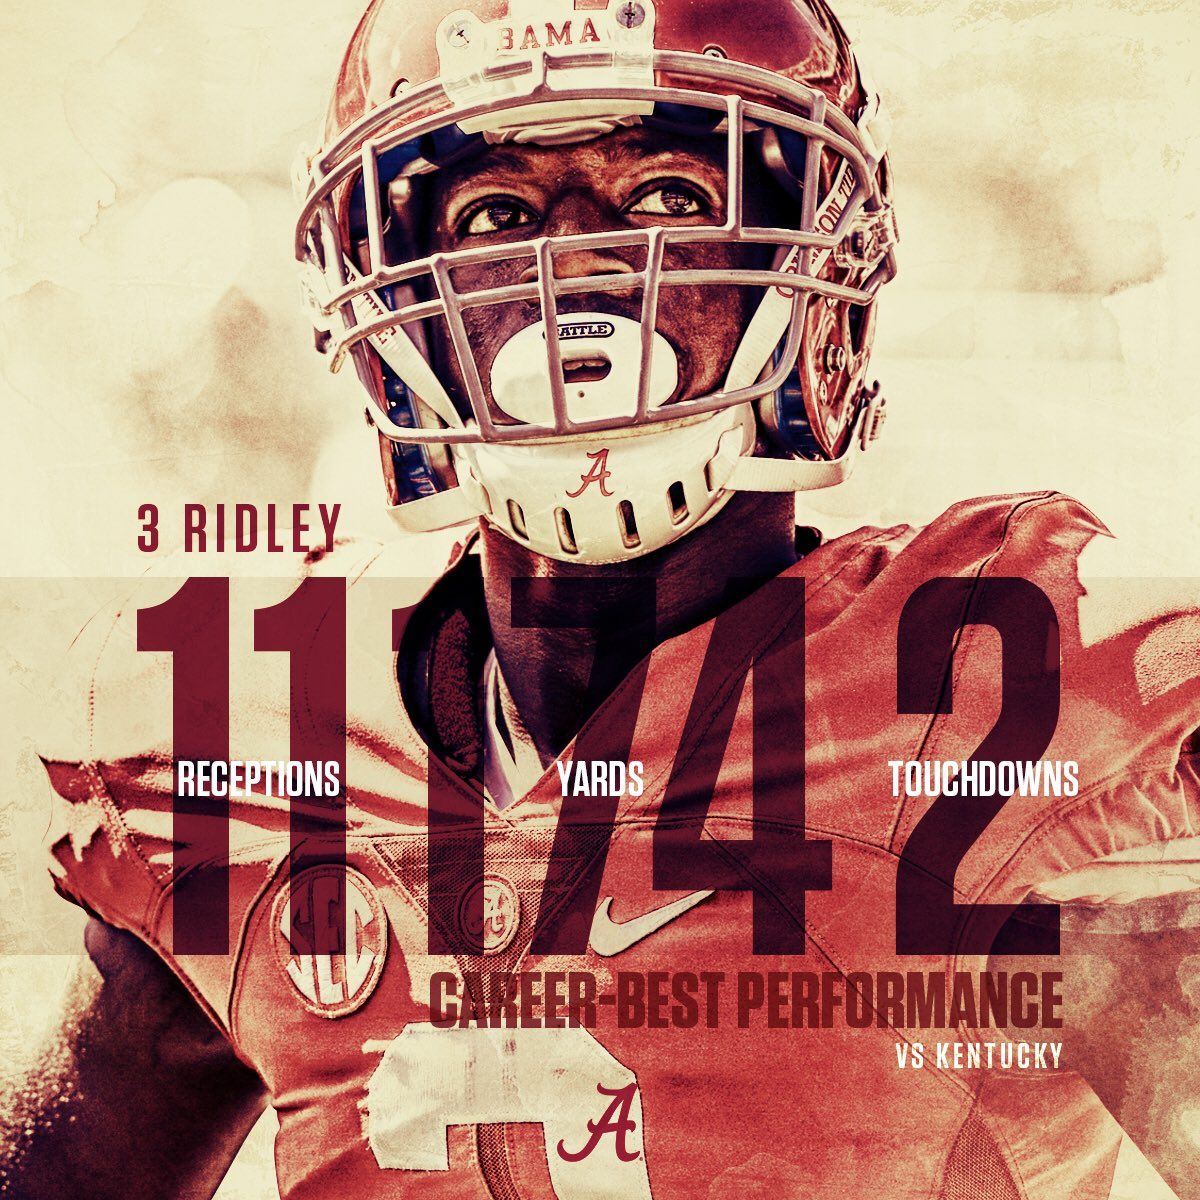 Sophomore Calvin Ridley Had A Career Night In The Win Over Kentucky Finishing With 11 Rec Crimson Tide Football Sports Design Inspiration Sports Graphic Design